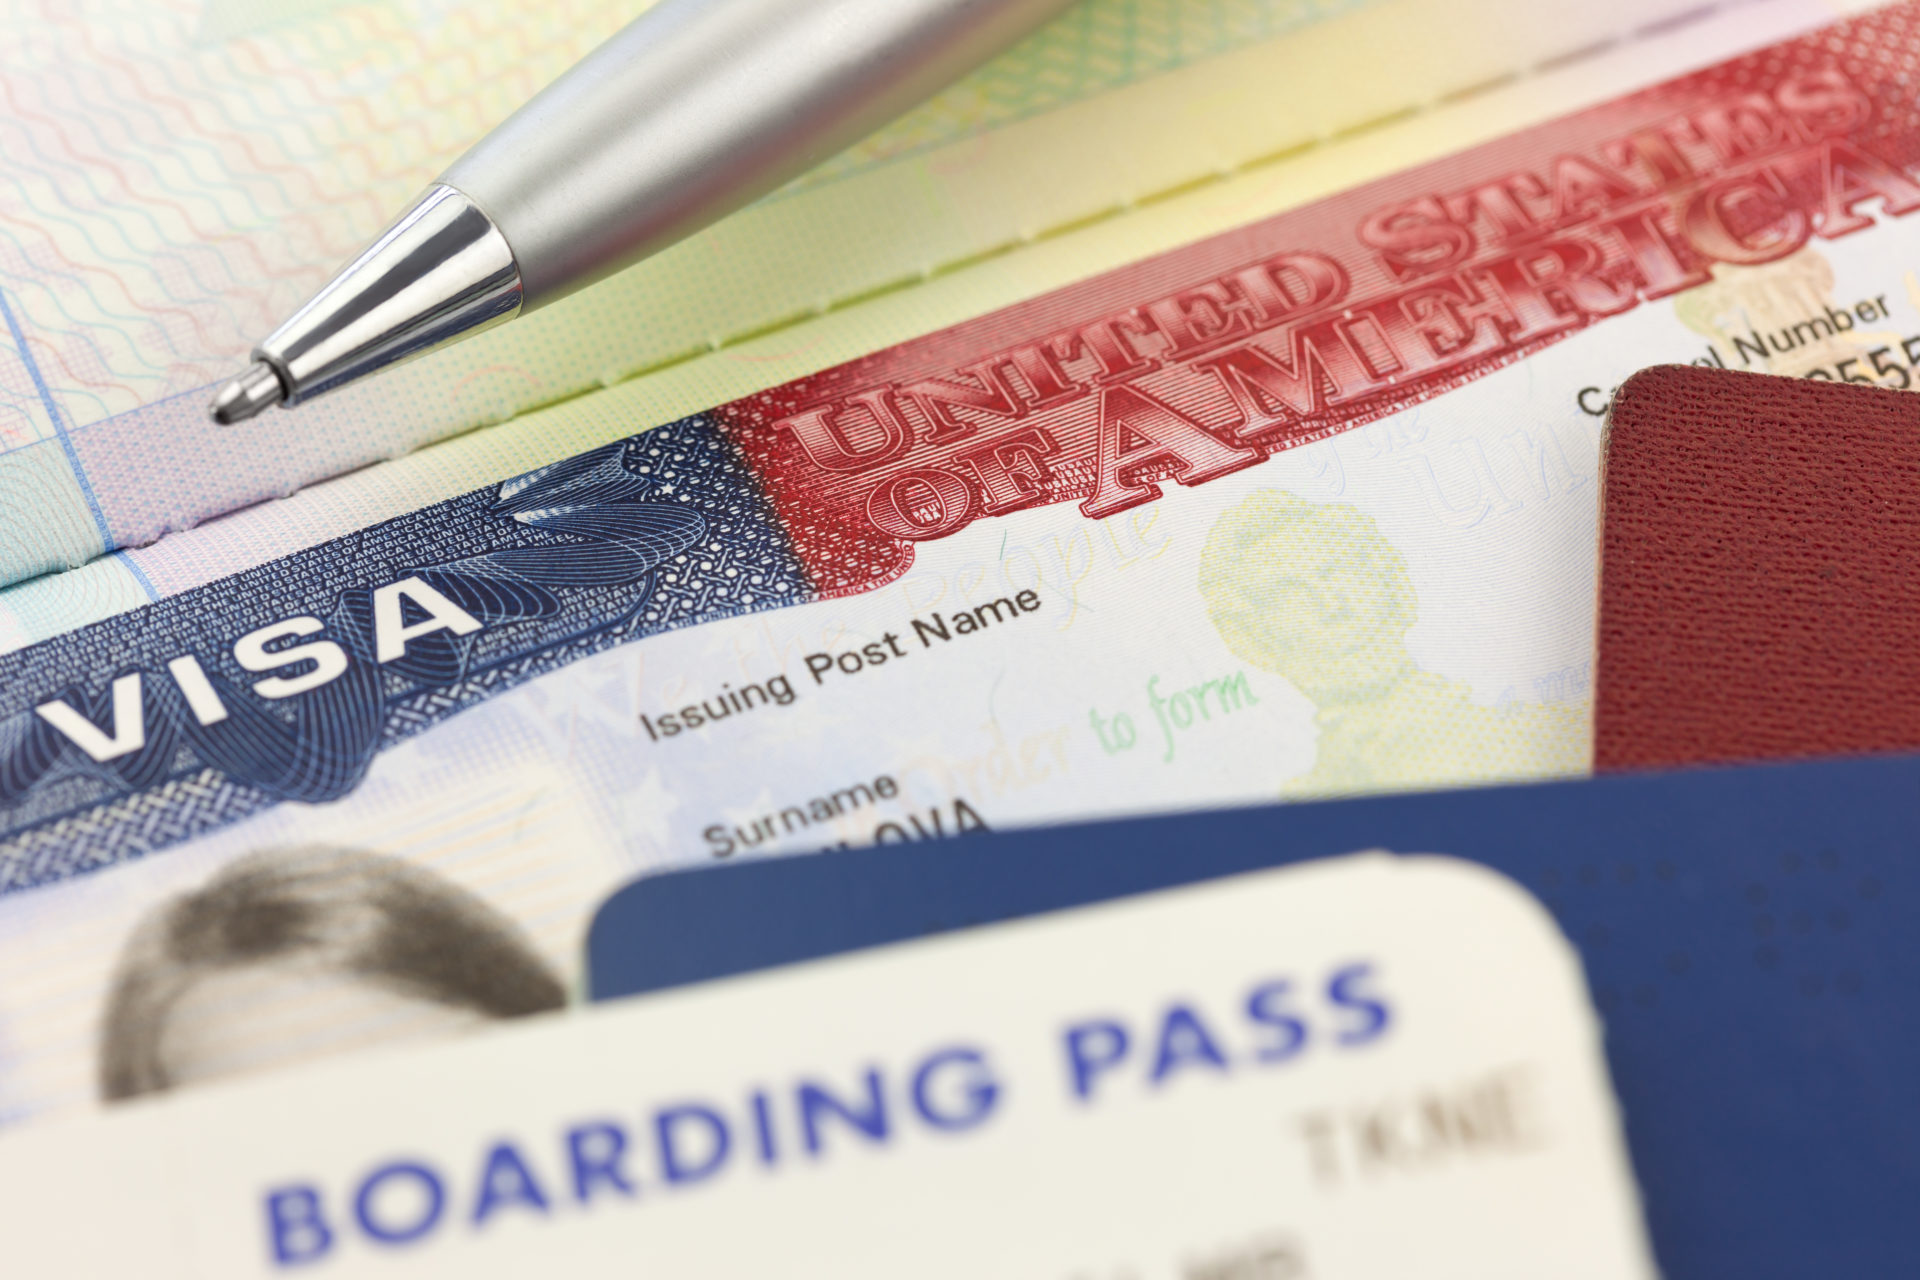 Should you meet the requirements, Expedited, Emergency Visa Appointments make securing a visa for travel quicker